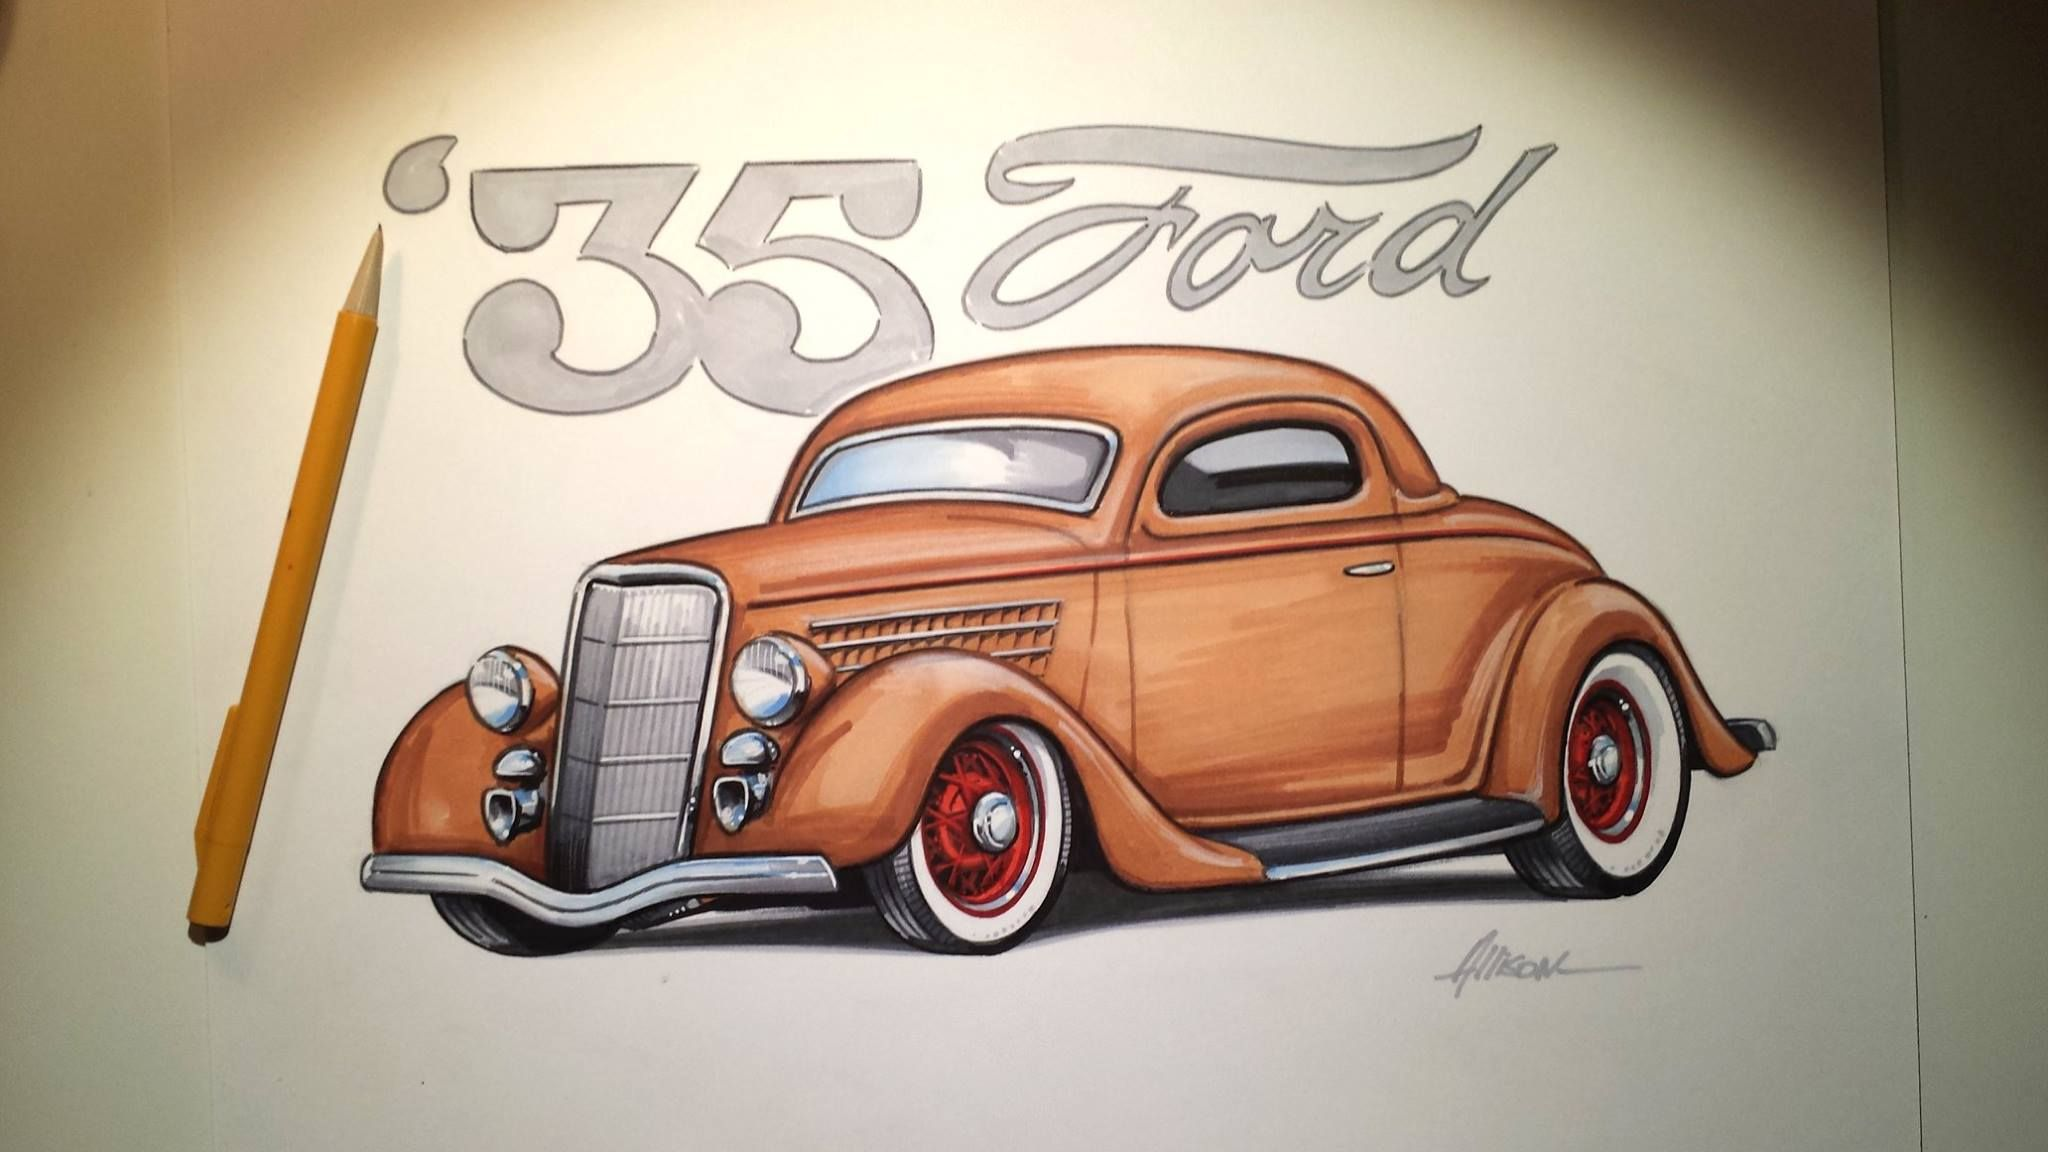 f93047f37fa5b0b0c21c3230b15fb7a6 Interesting Info About Cartoon Car Engine with Amazing Images Cars Review